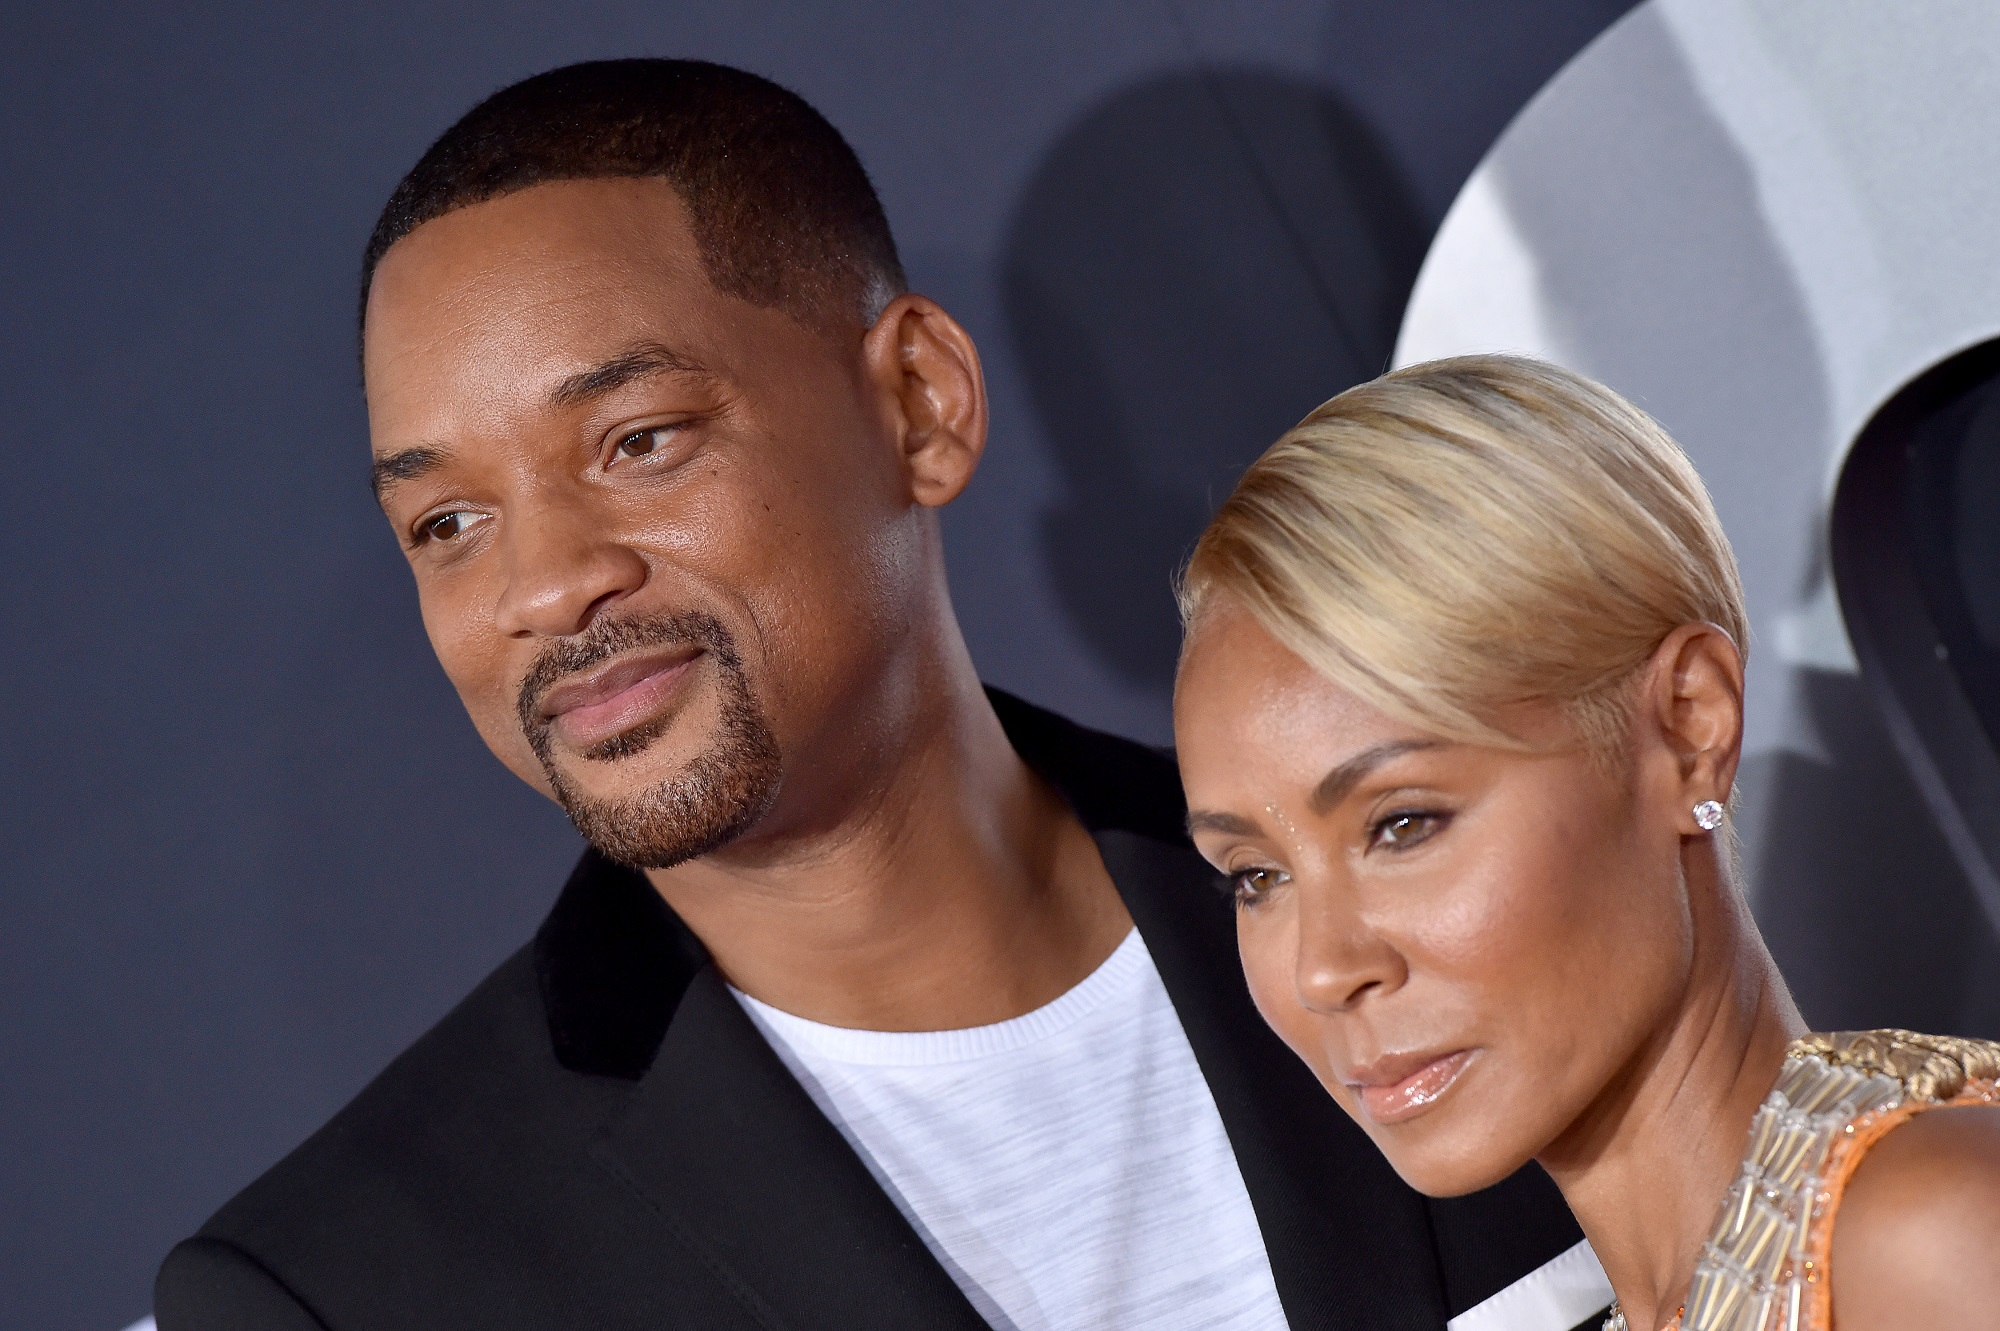 Will Smith and Jada Pinkett Smith are rumored to be Scientologists